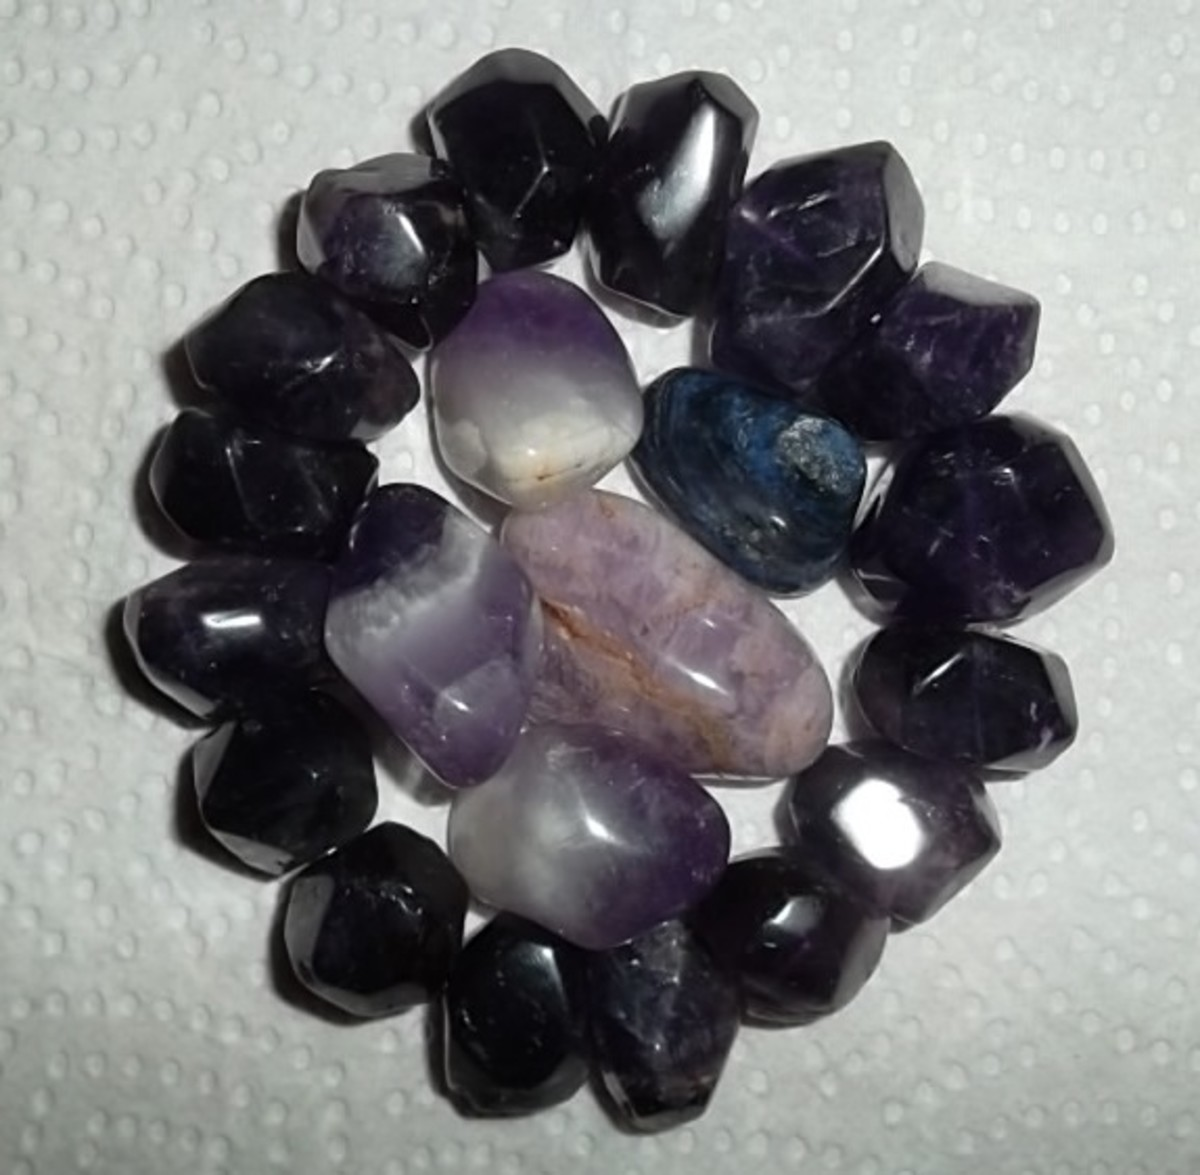 Amethyst is a violet variety of quartz. The ancient Greeks believed that wearing it protected one from becoming intoxicated